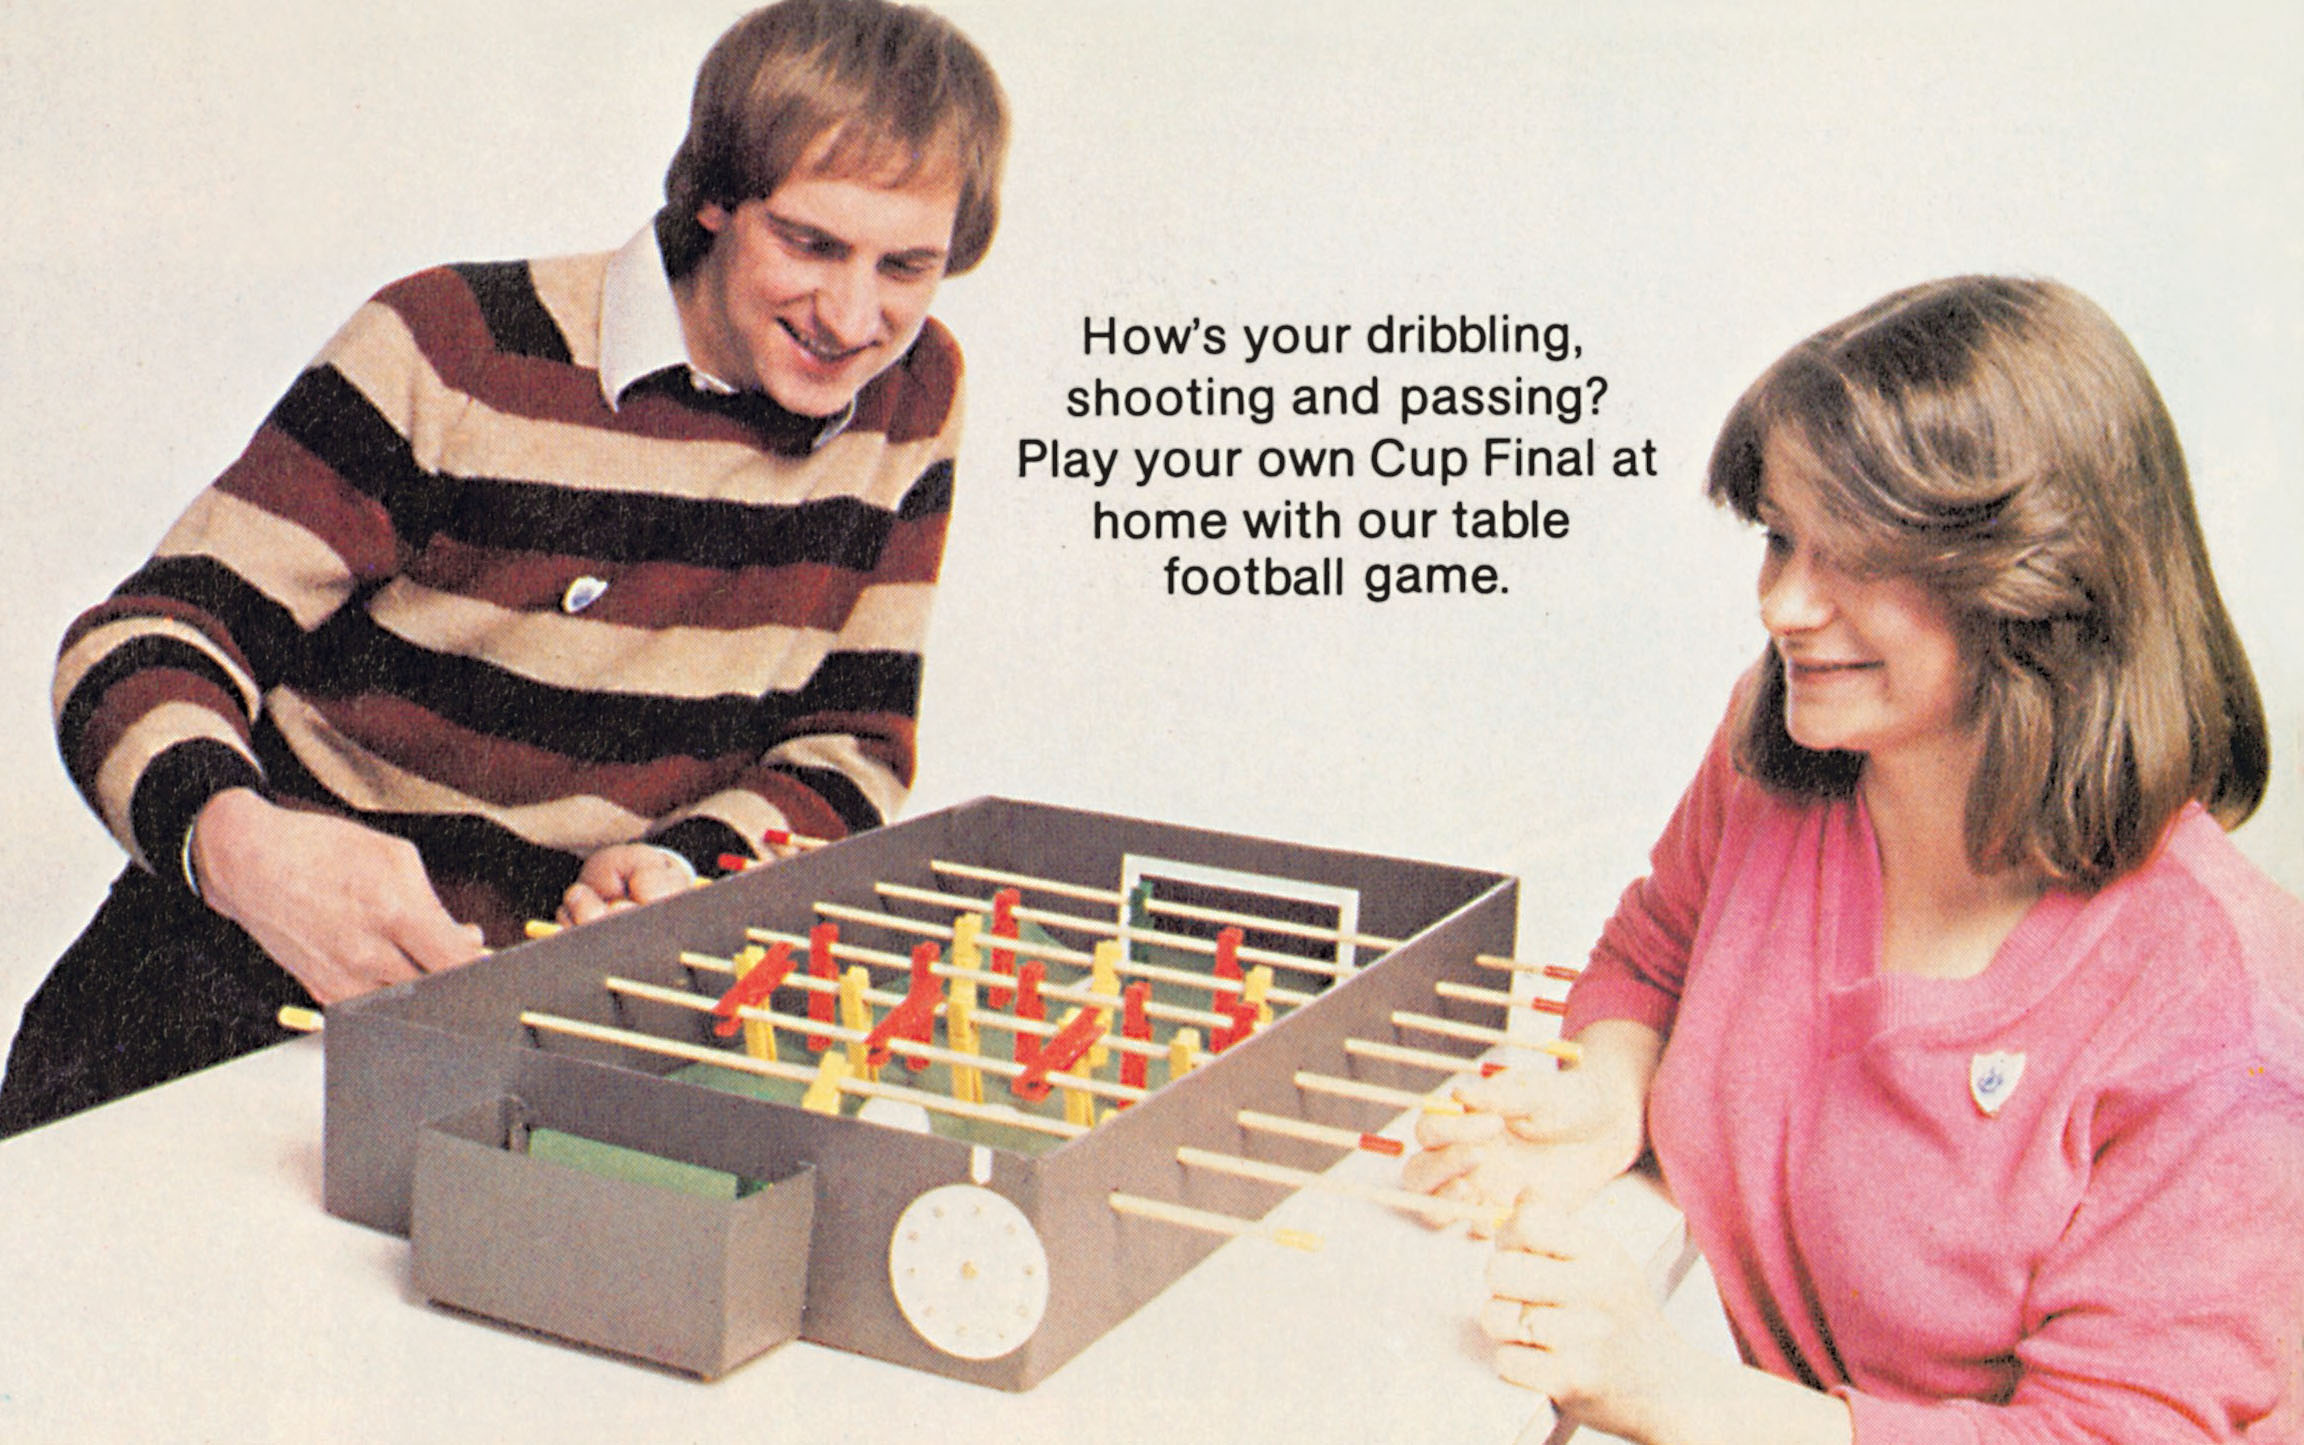 A man and a woman play table football together